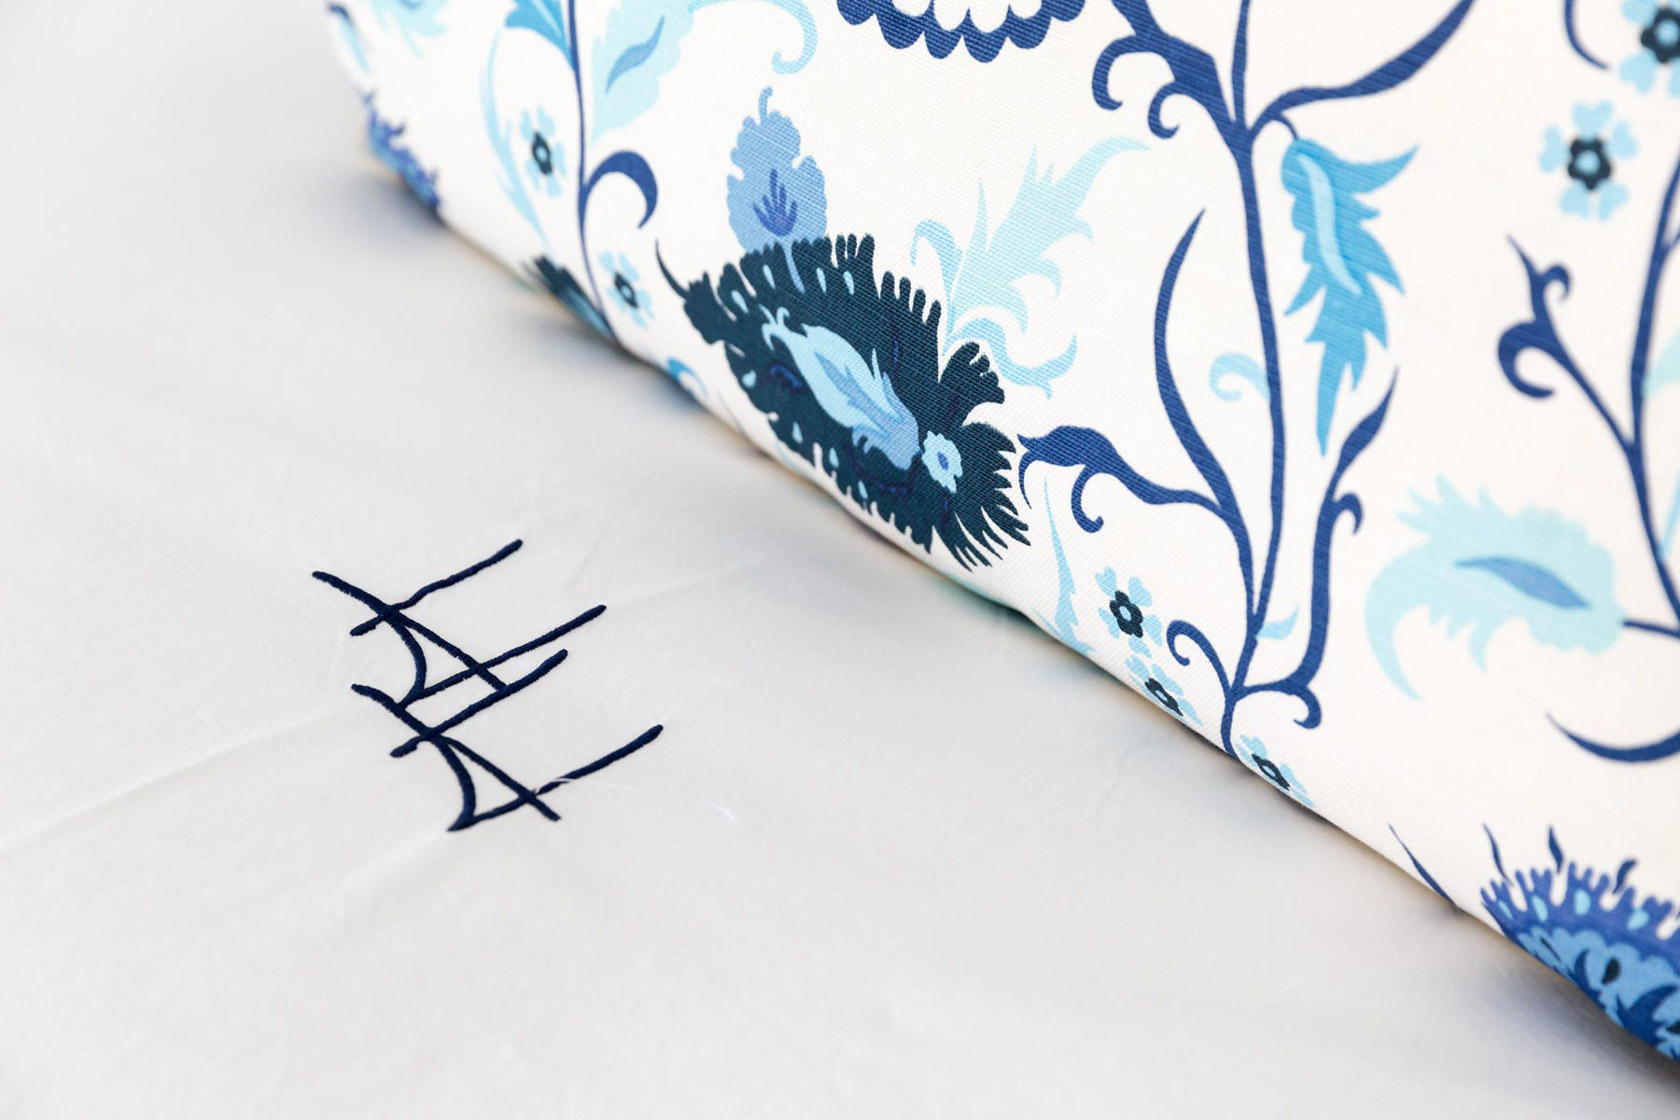 HH embroidery on bedsheets